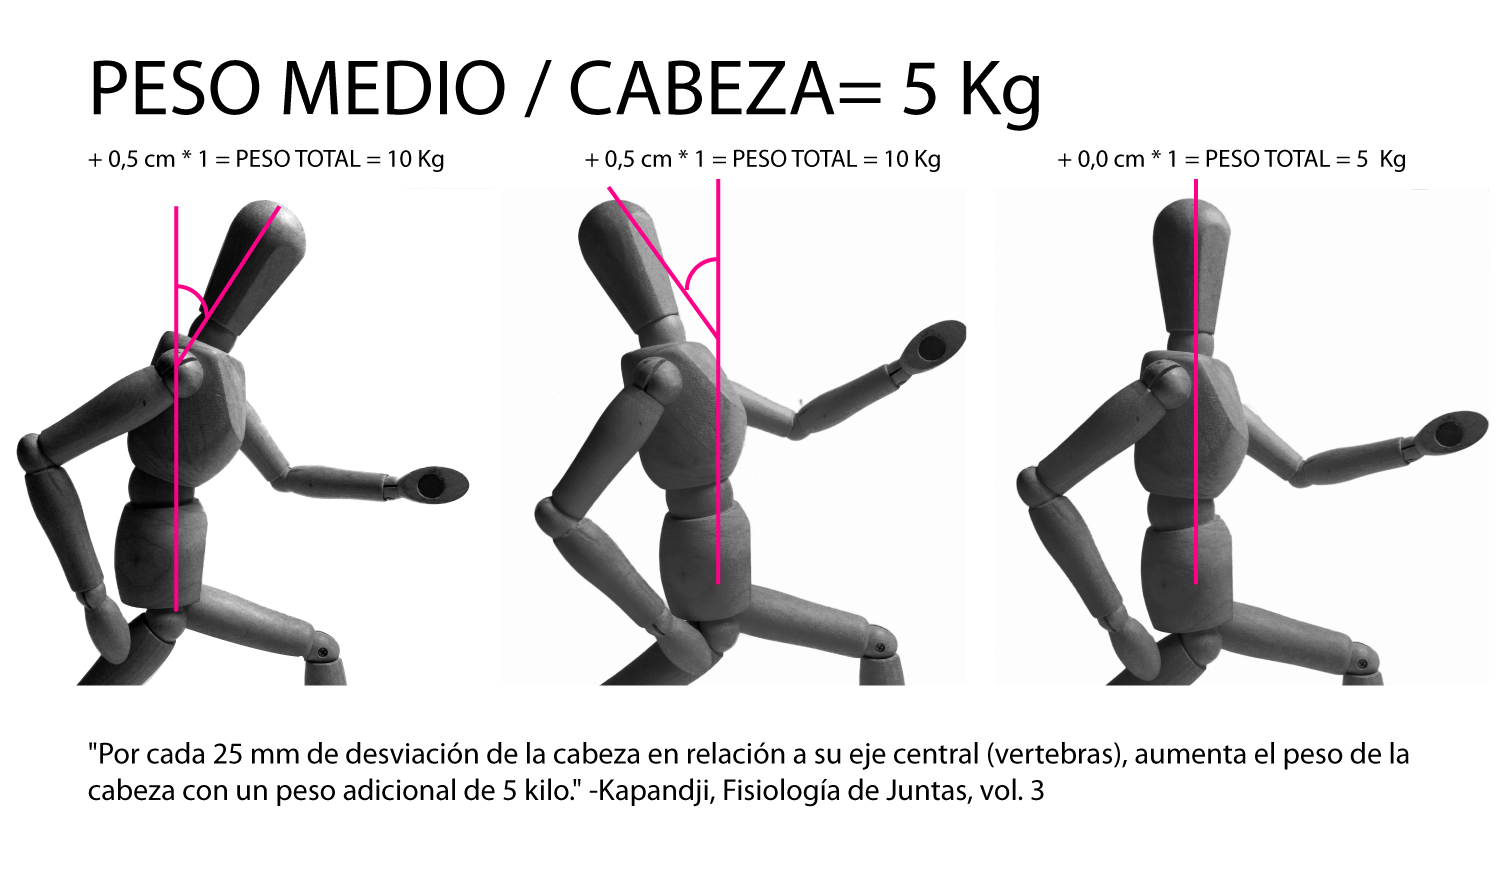 head position running deviation - posicion cabeza corredor  pose running tecnica carrera